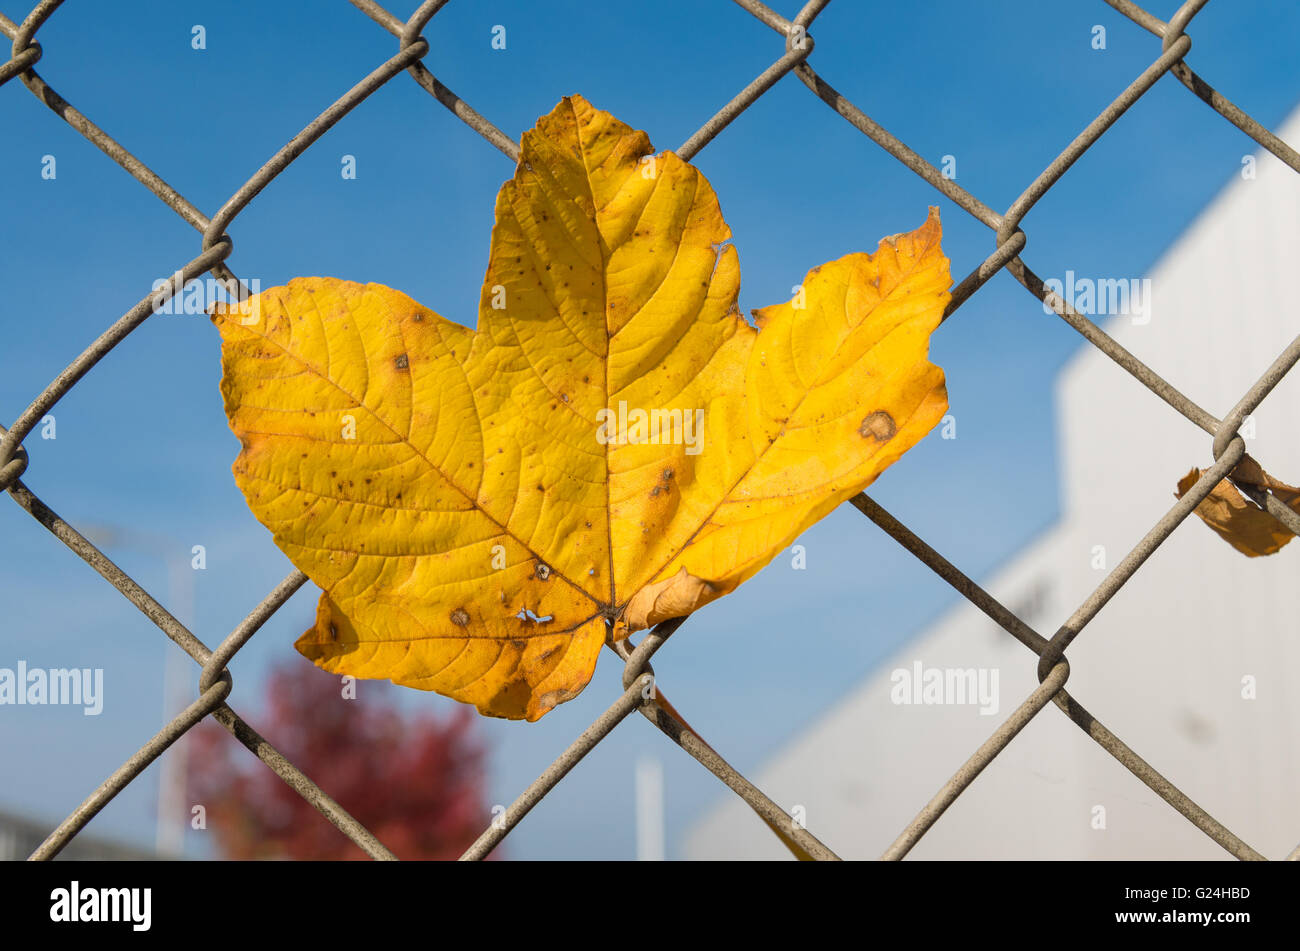 Autumn Leaf On Metal Wire Stockfotos & Autumn Leaf On Metal Wire ...